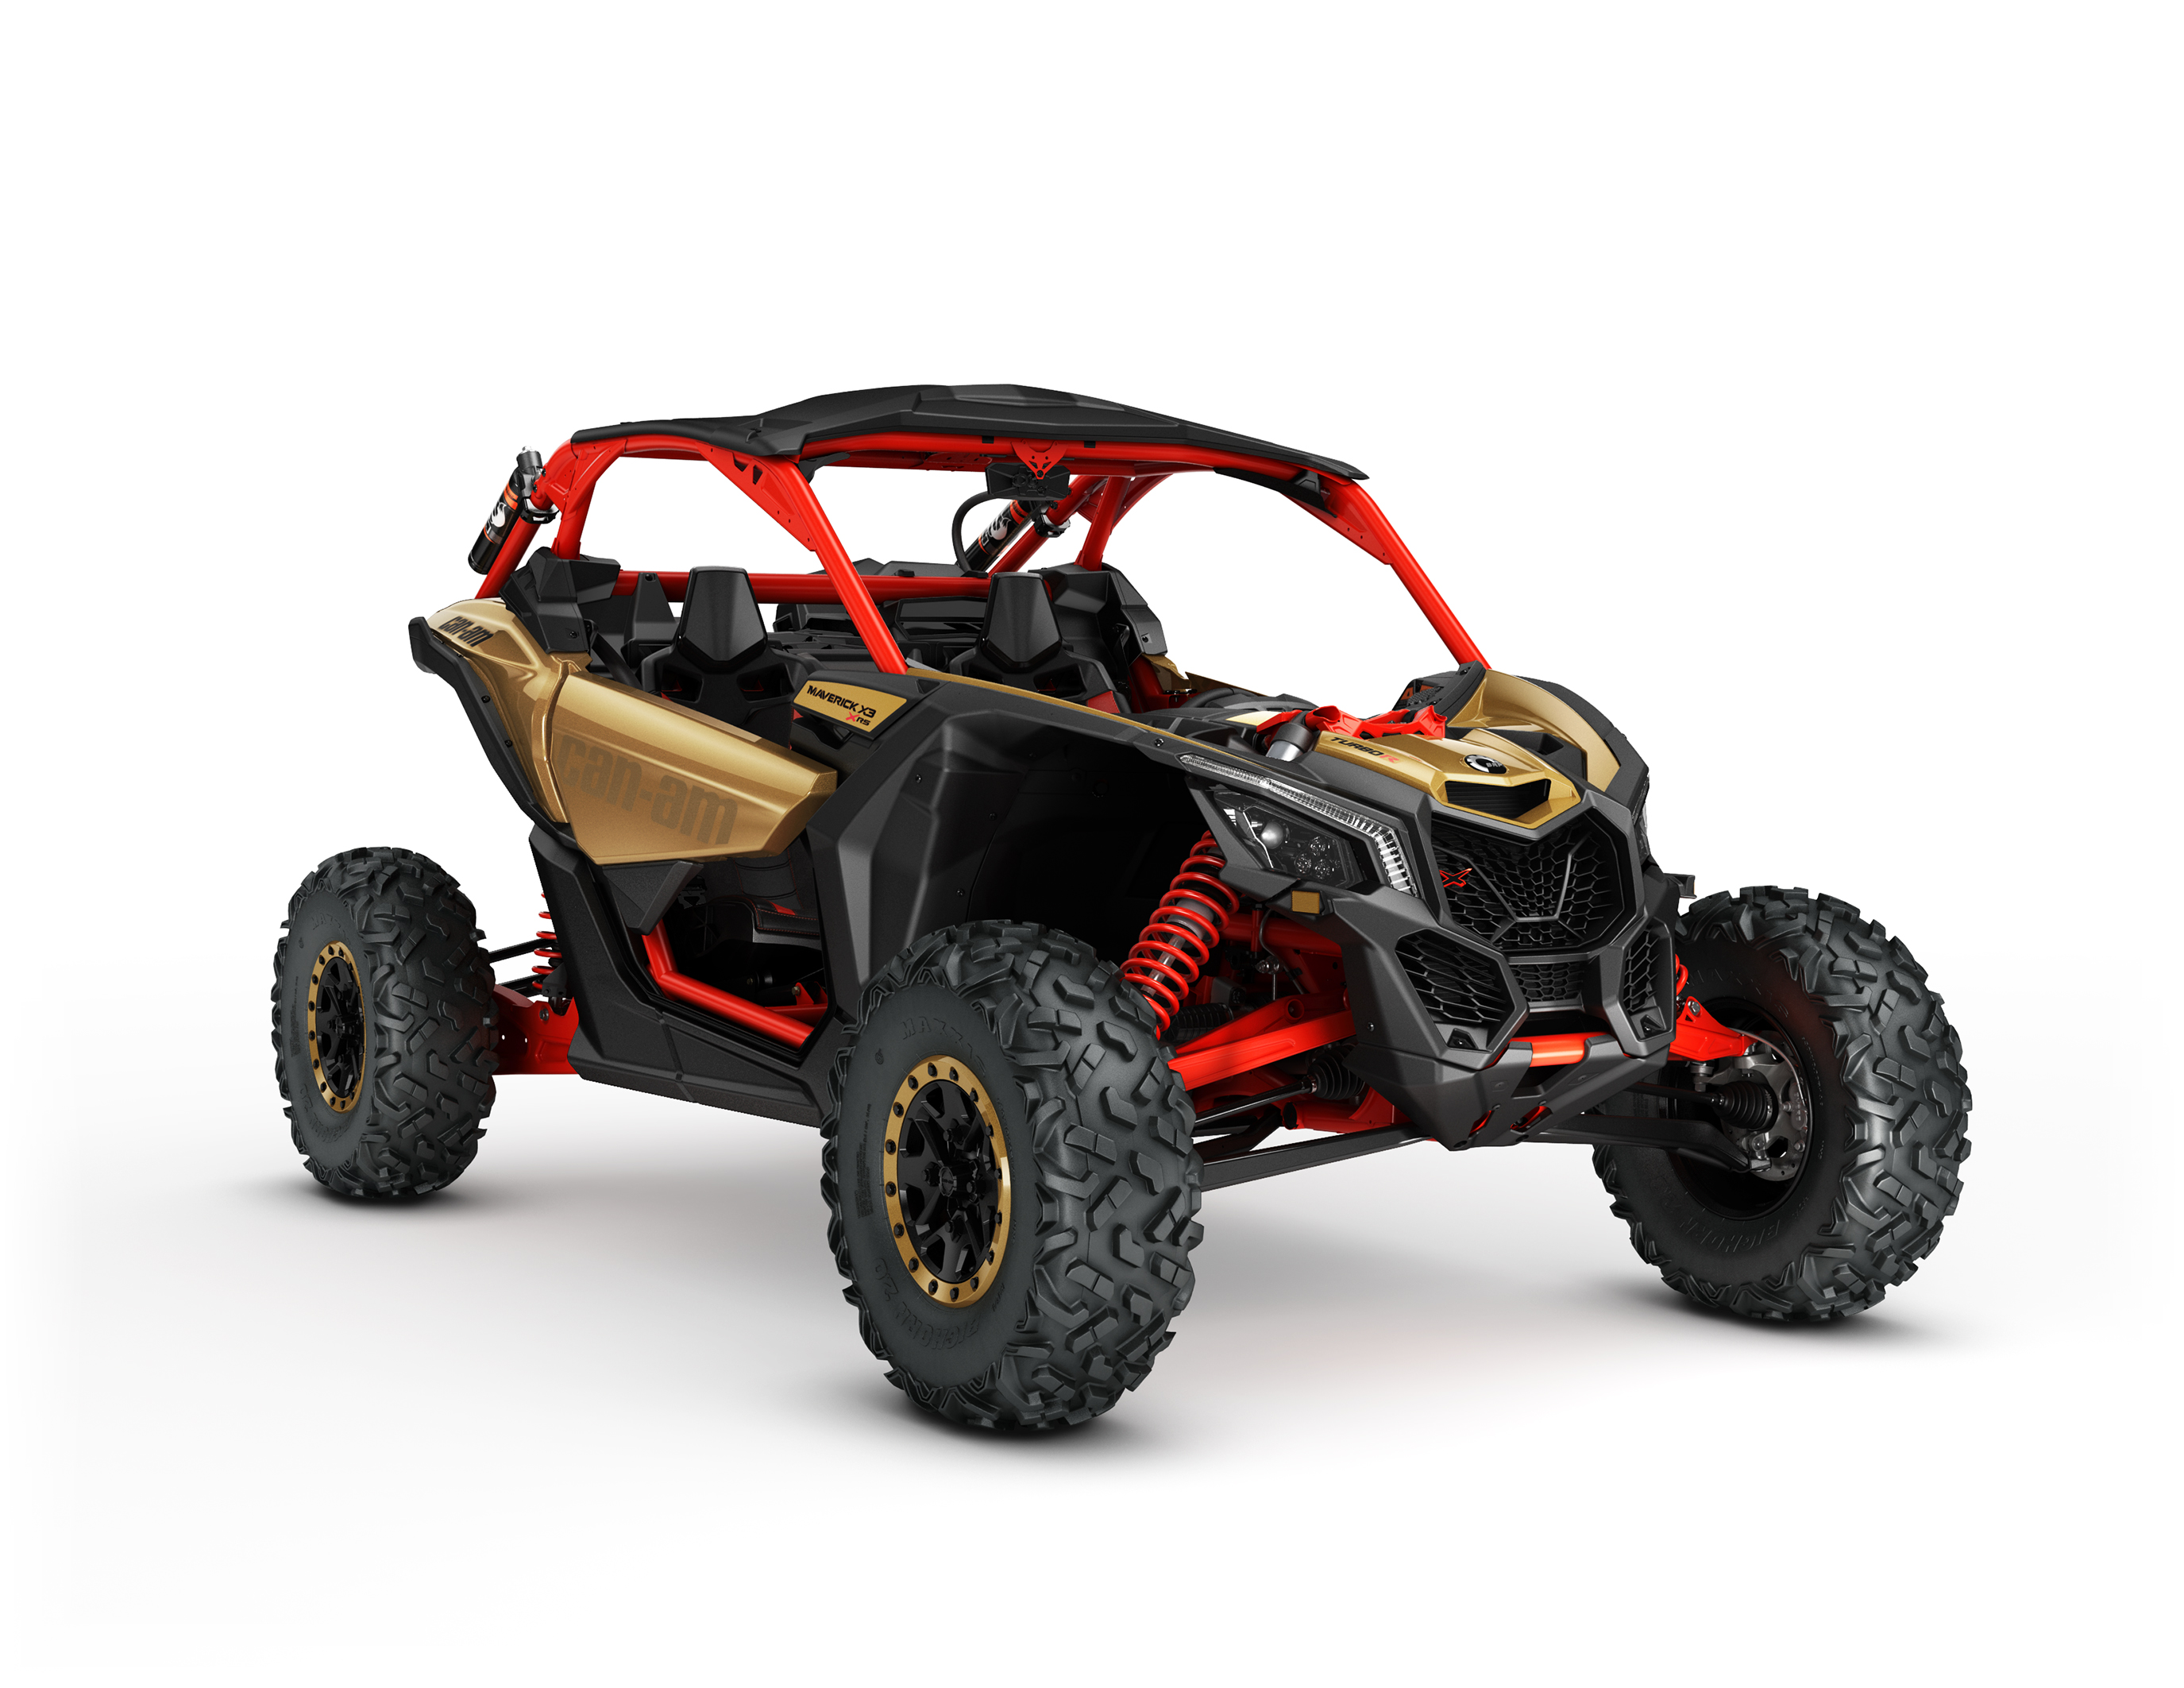 brp recalls side by side off road vehicles due to loss of steering control and crash hazard. Black Bedroom Furniture Sets. Home Design Ideas